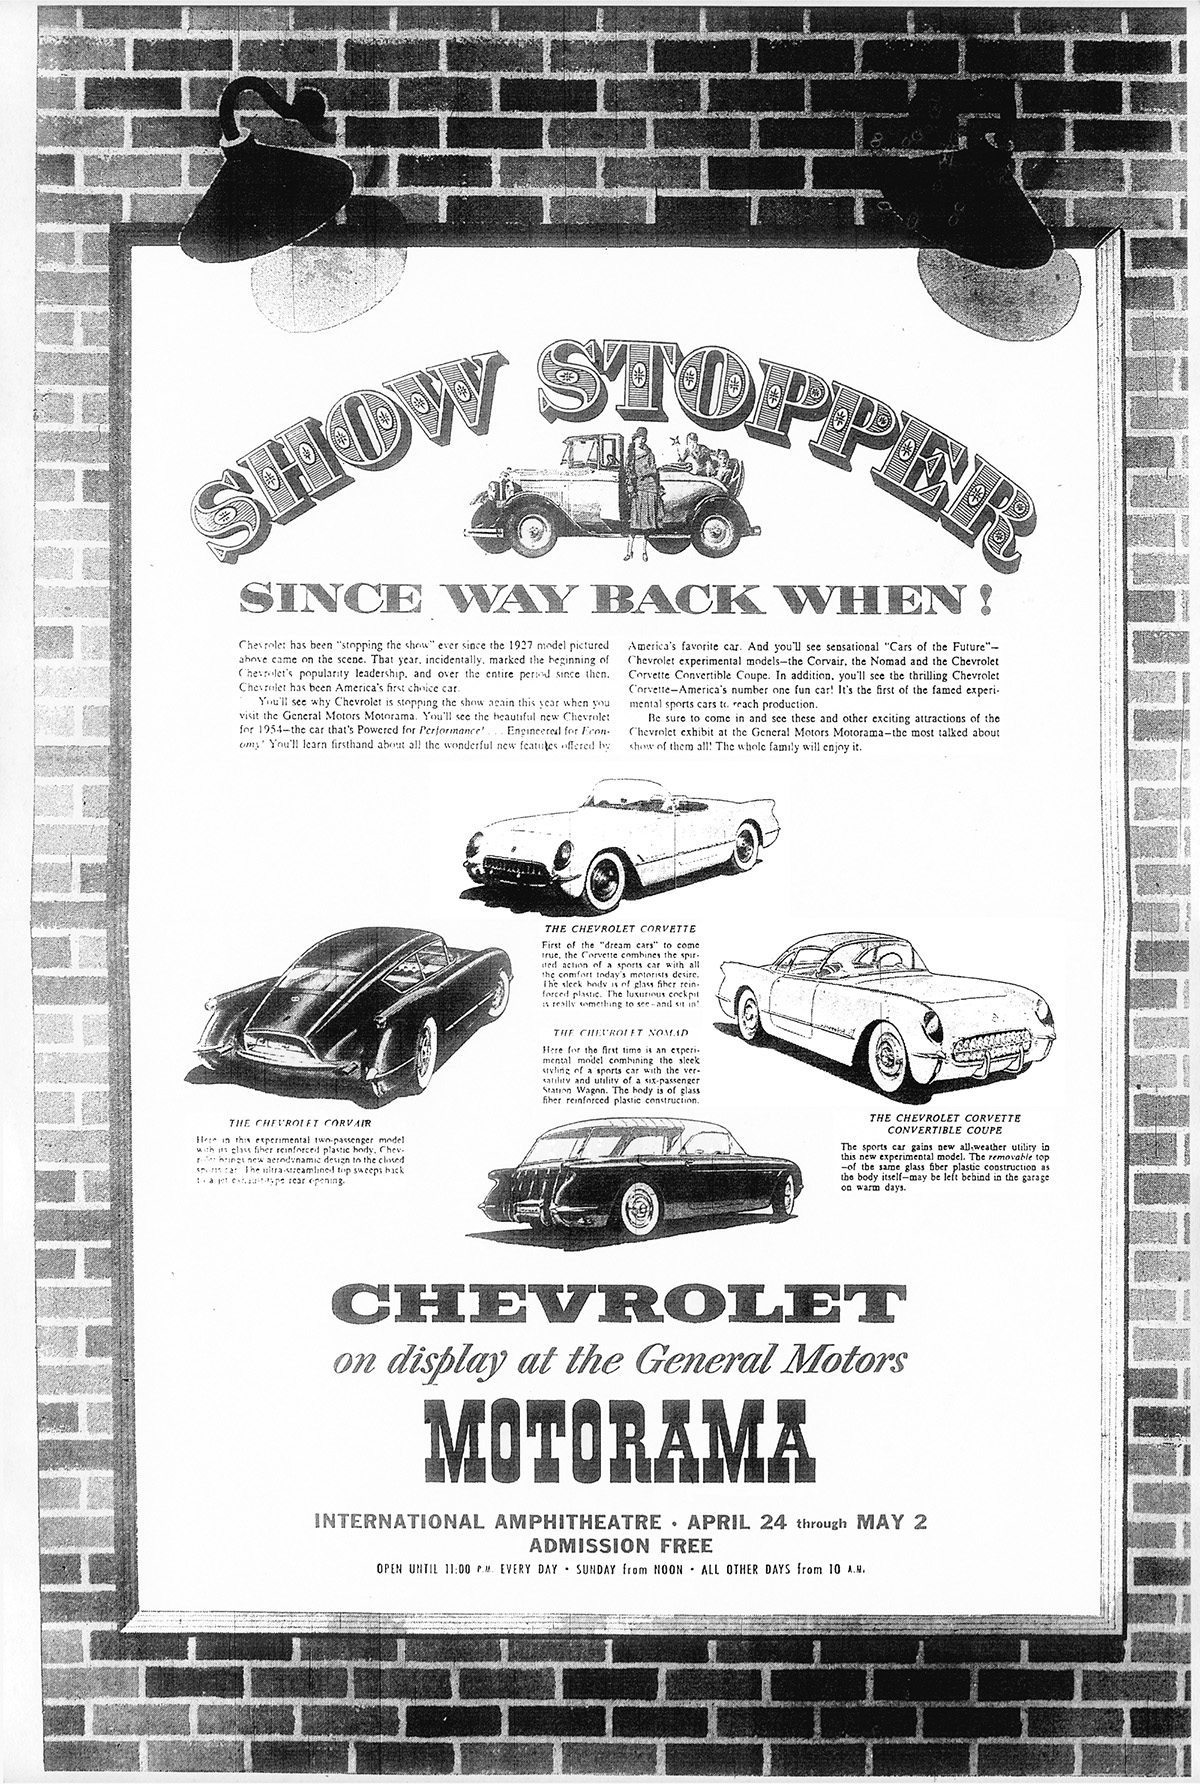 1954 GM Chevrolet Motorama Advertisement